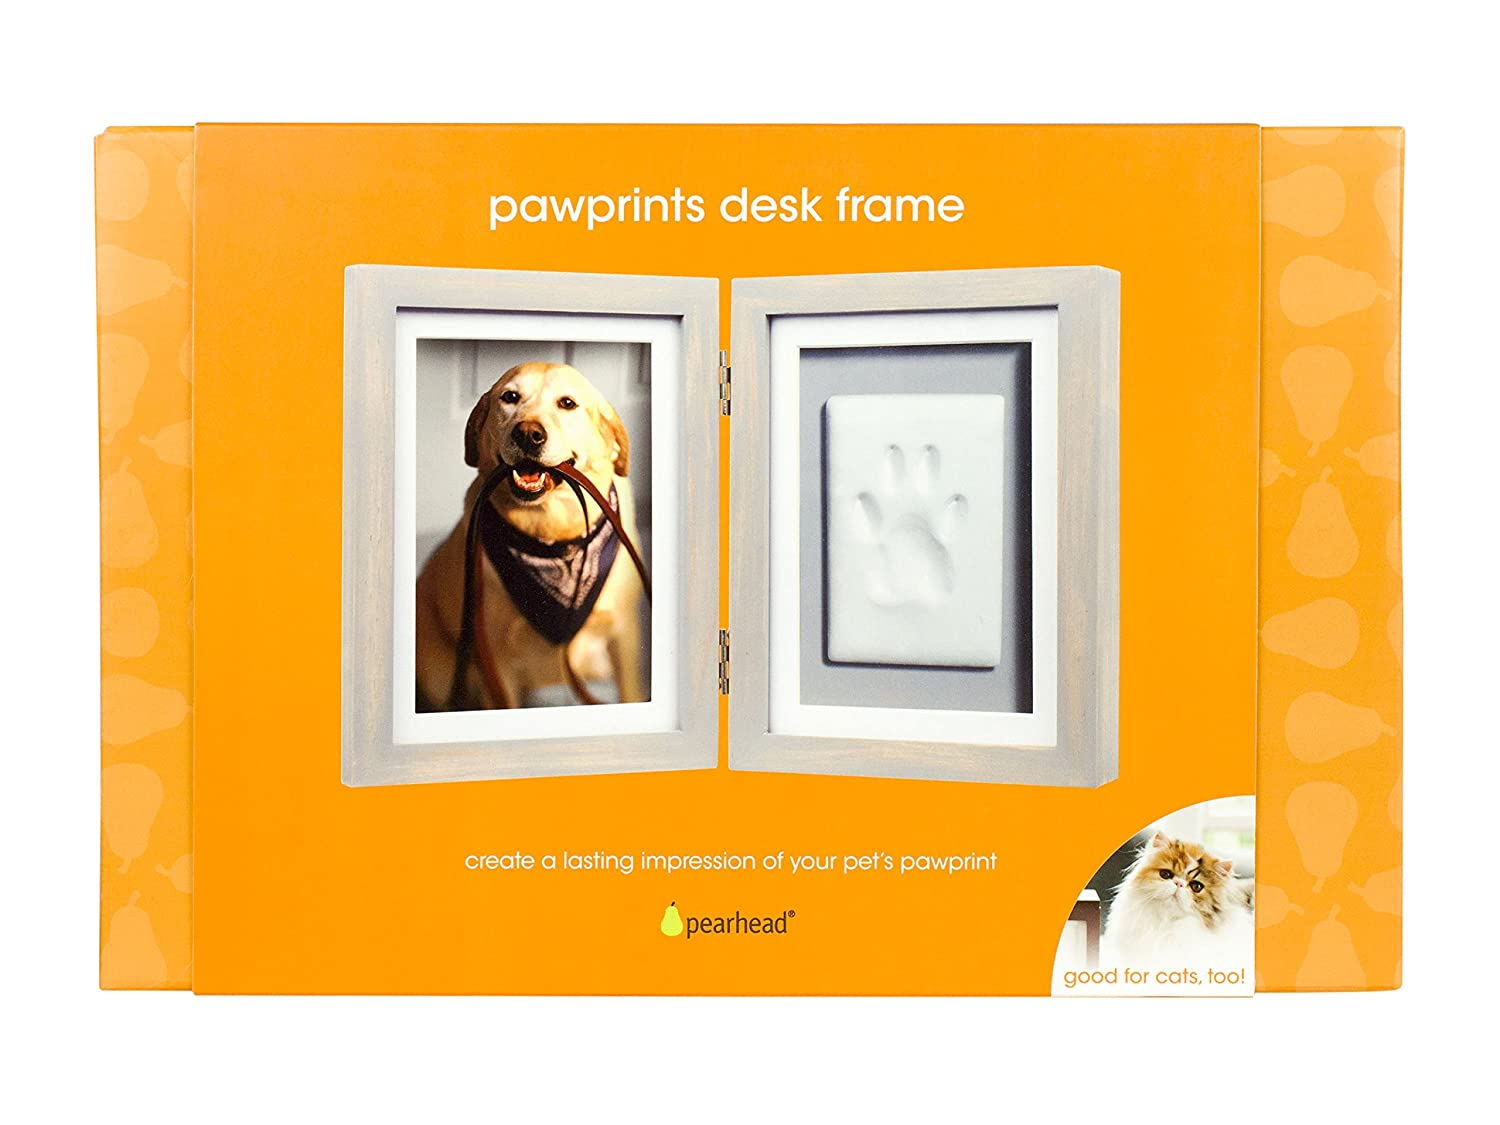 Pearhead Pet Paw Prints Dog or Cat Desk Frame with Inlucded Imprint Kit Pefect Pet Keepsake